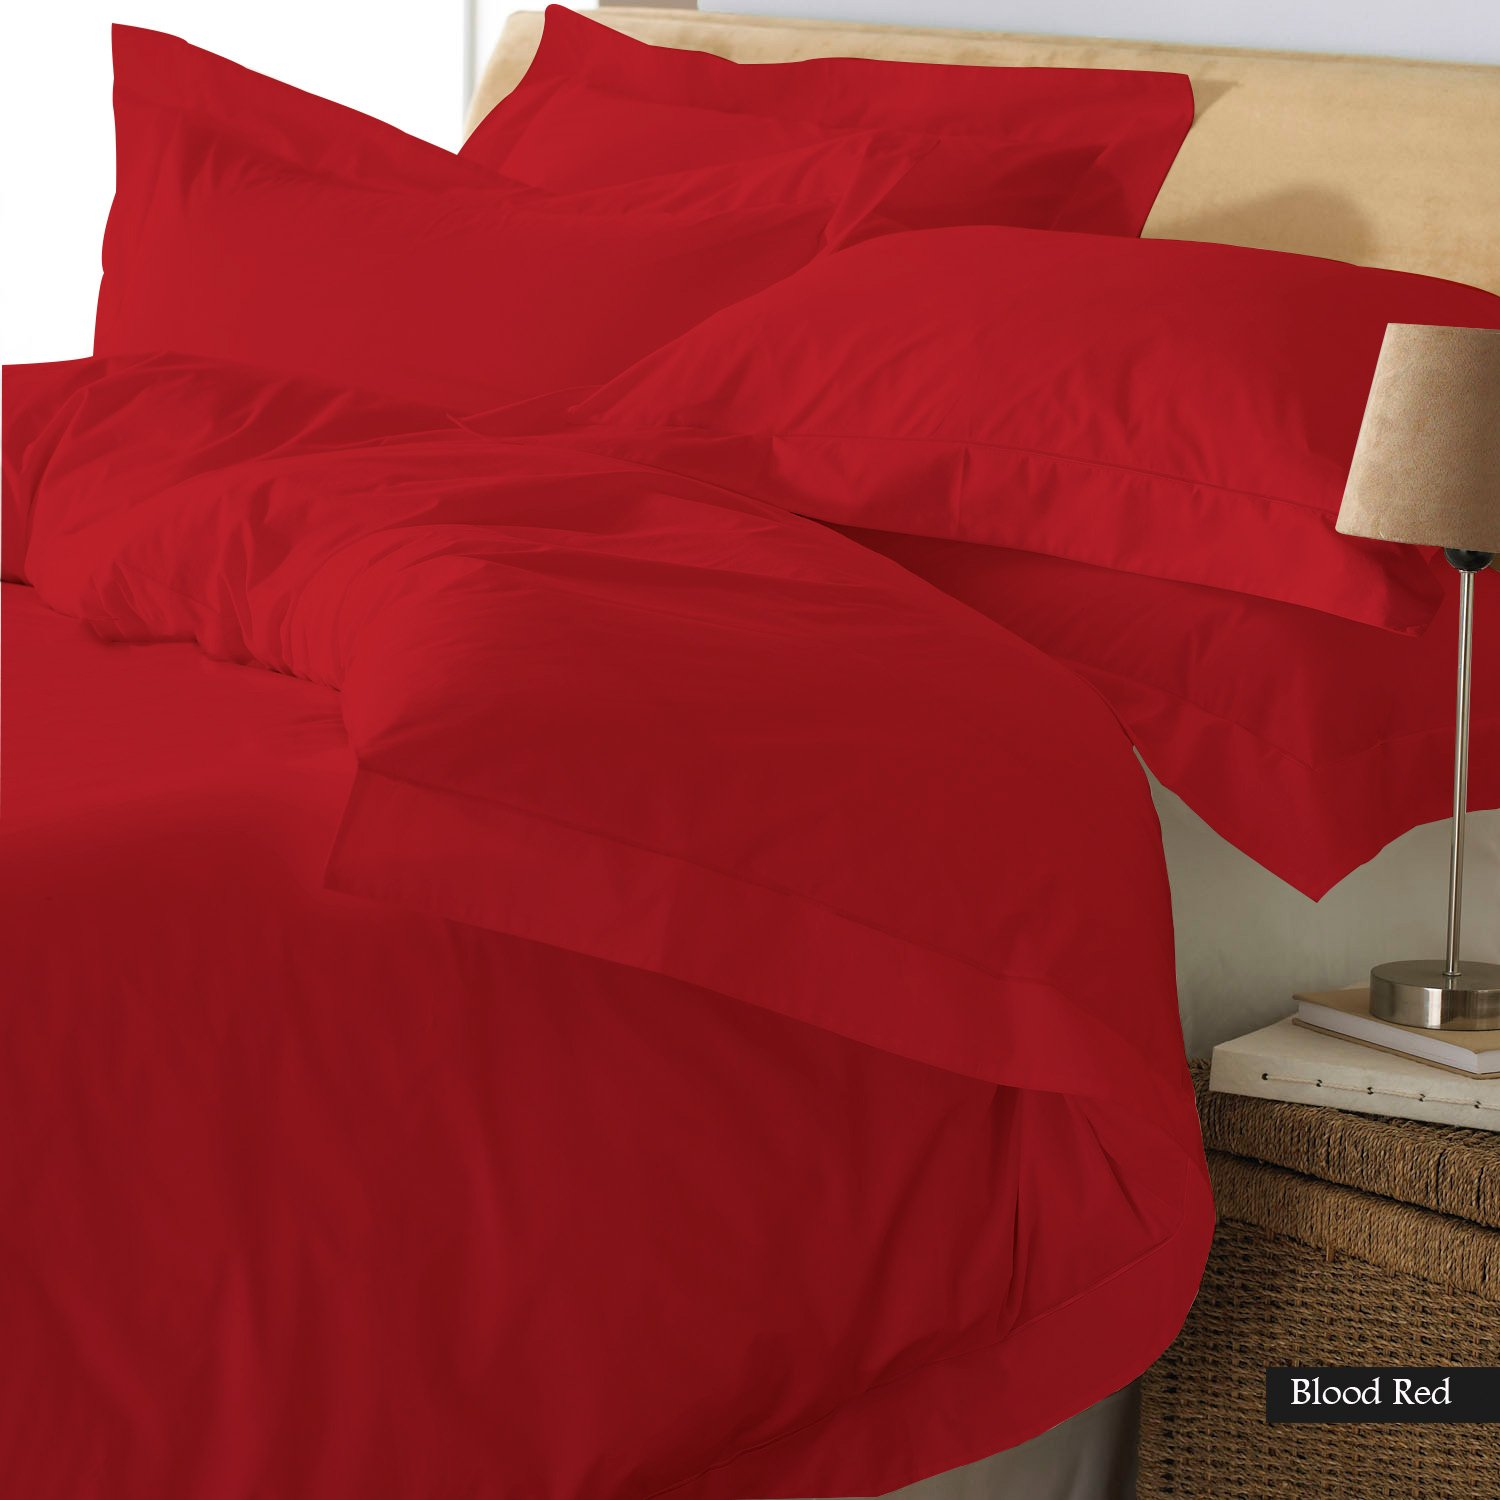 FINE LECHO Egyptian Cotton Luxury Hotel Quality 3-Piece Duvet Cover Set (Zipper Closure & Corner Ties) with 1-Piece Fitted Sheet in 18'' deep 800TC Modern Style Set (Olympic Queen, Blood Red)